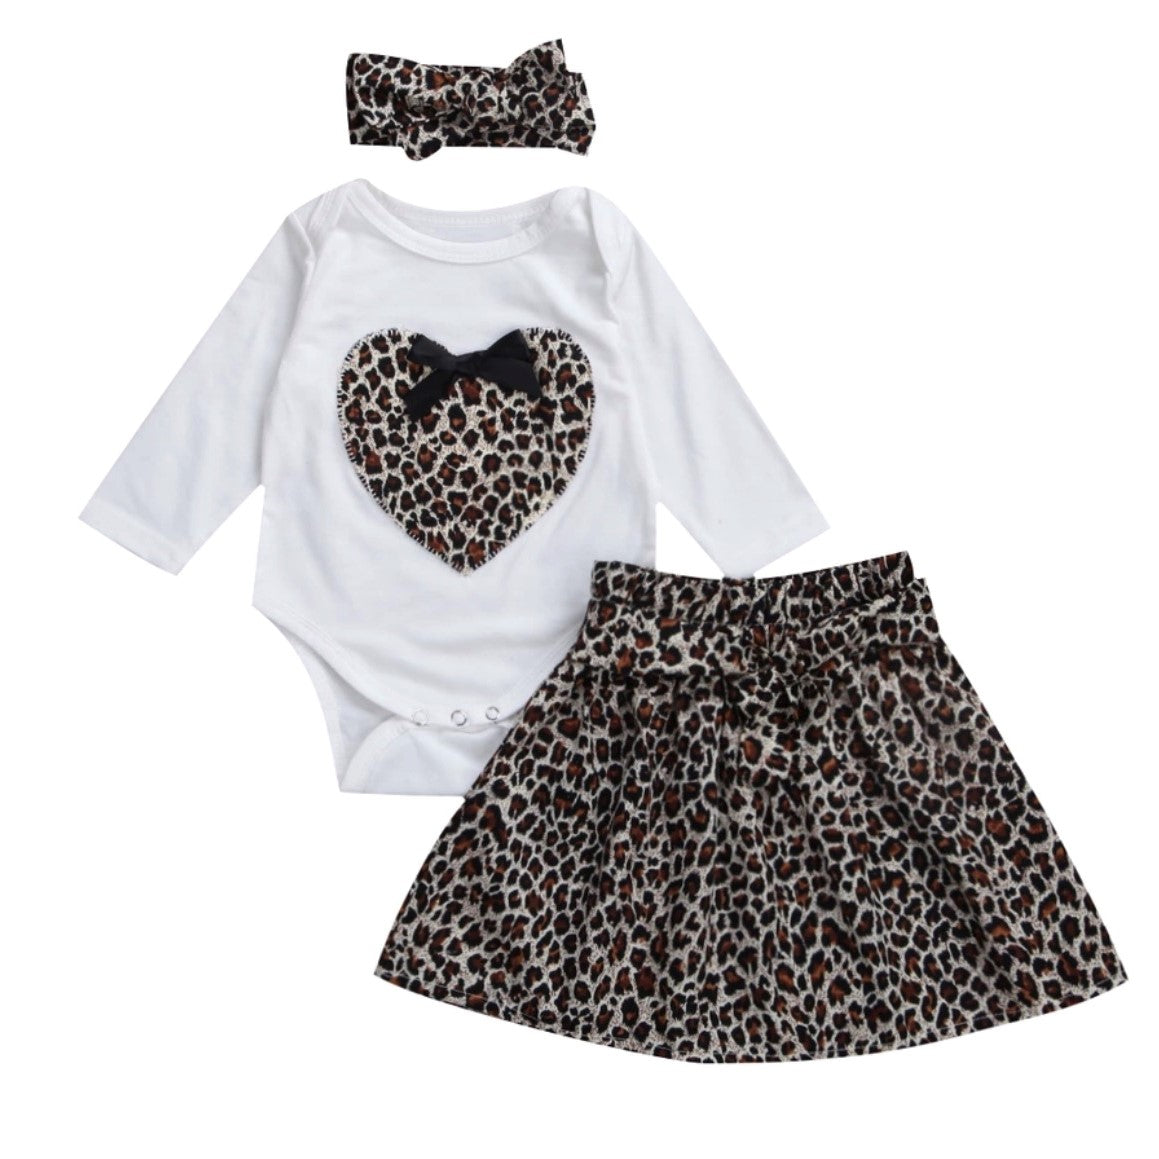 d7ee3be0f140 Baby girl outfit l baby dress